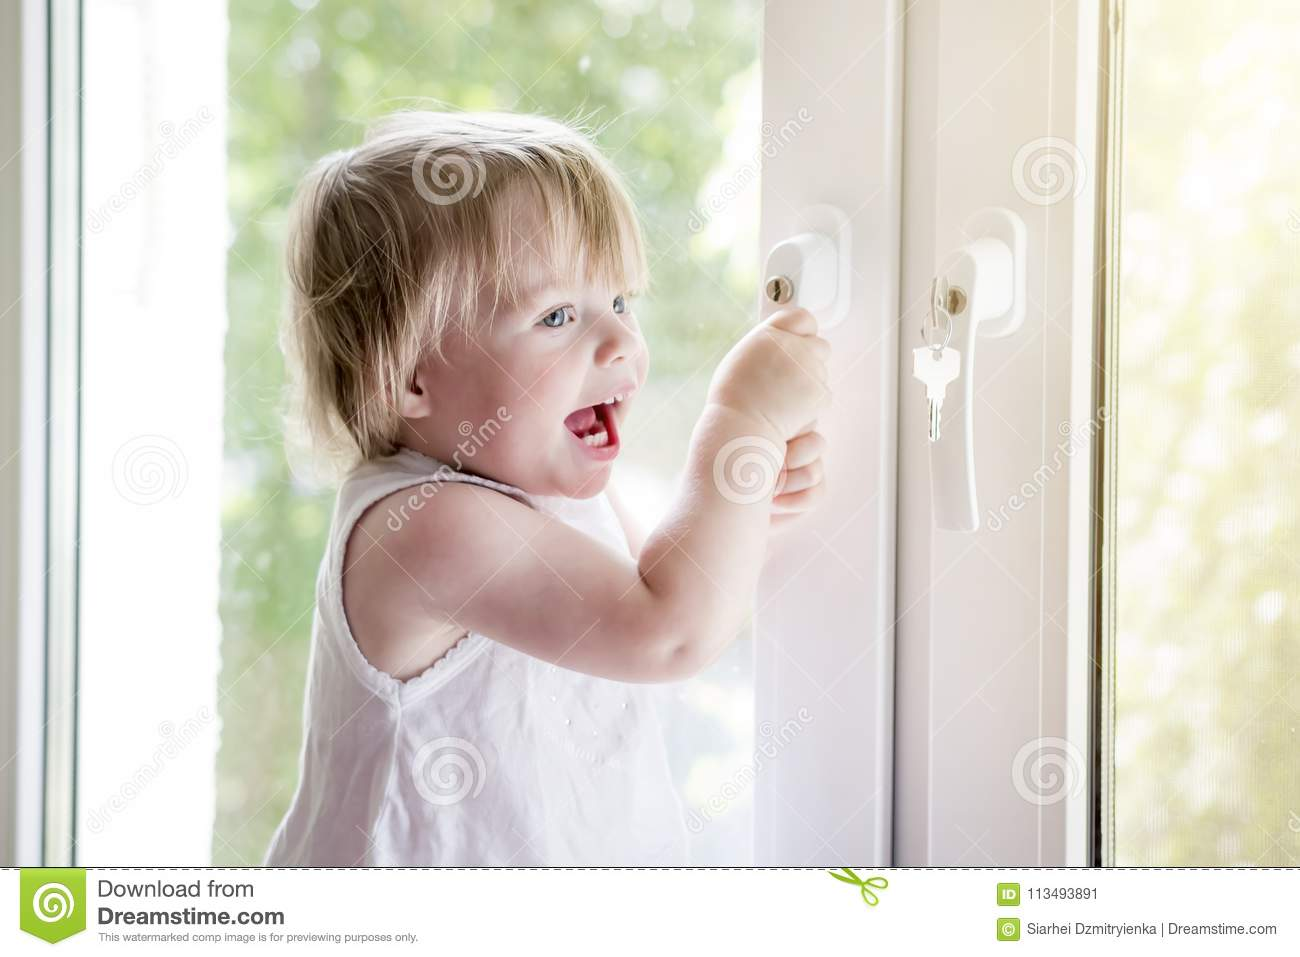 Small child near window. lock on handle of window. Child`s safet